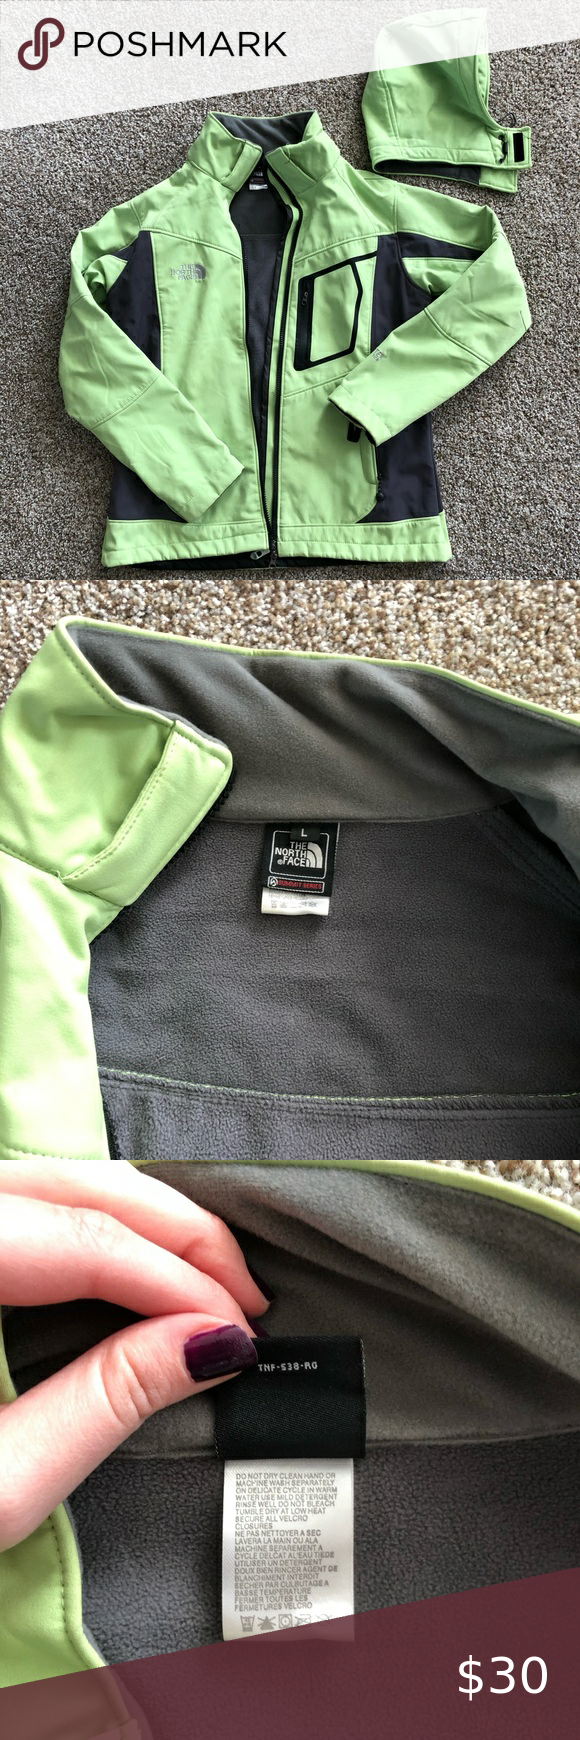 Green North Face Jacket Lime Green Women S North Face Jacket With Detachable Hood Perfect Condition A North Face Jacket Green North Face Jacket The North Face [ 1740 x 580 Pixel ]